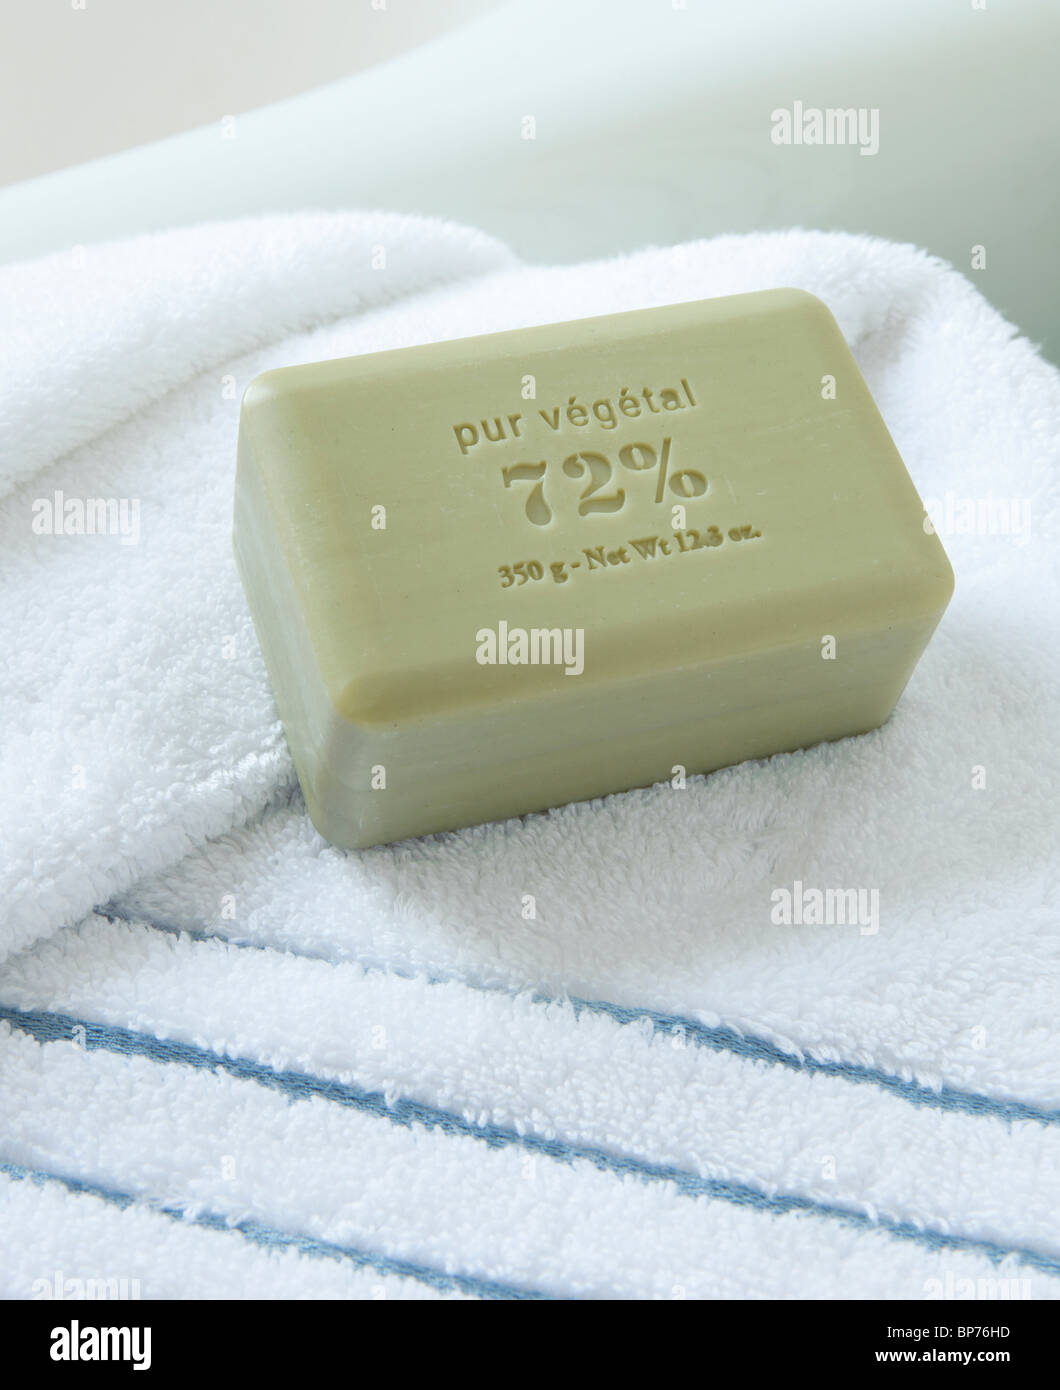 A BAR OF FRENCH SOAP ON A TOWEL - Stock Image